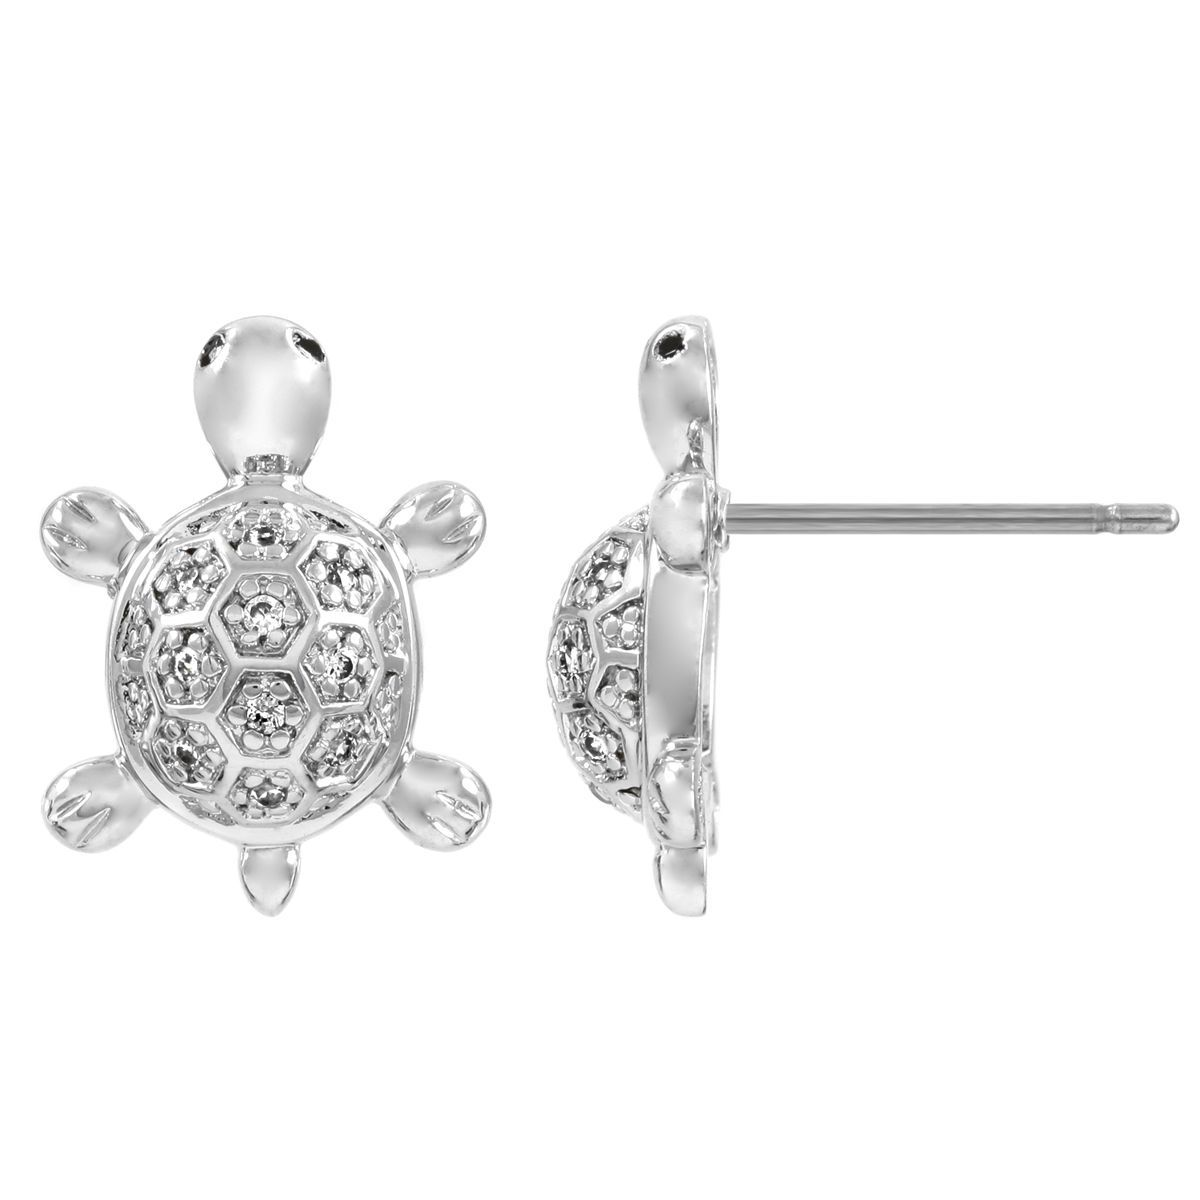 Add A Playful Touch To Any Outfit With These Cubic Zirconia Turtle Stud Earrings Adorable Feature Simple Silvertone Design And